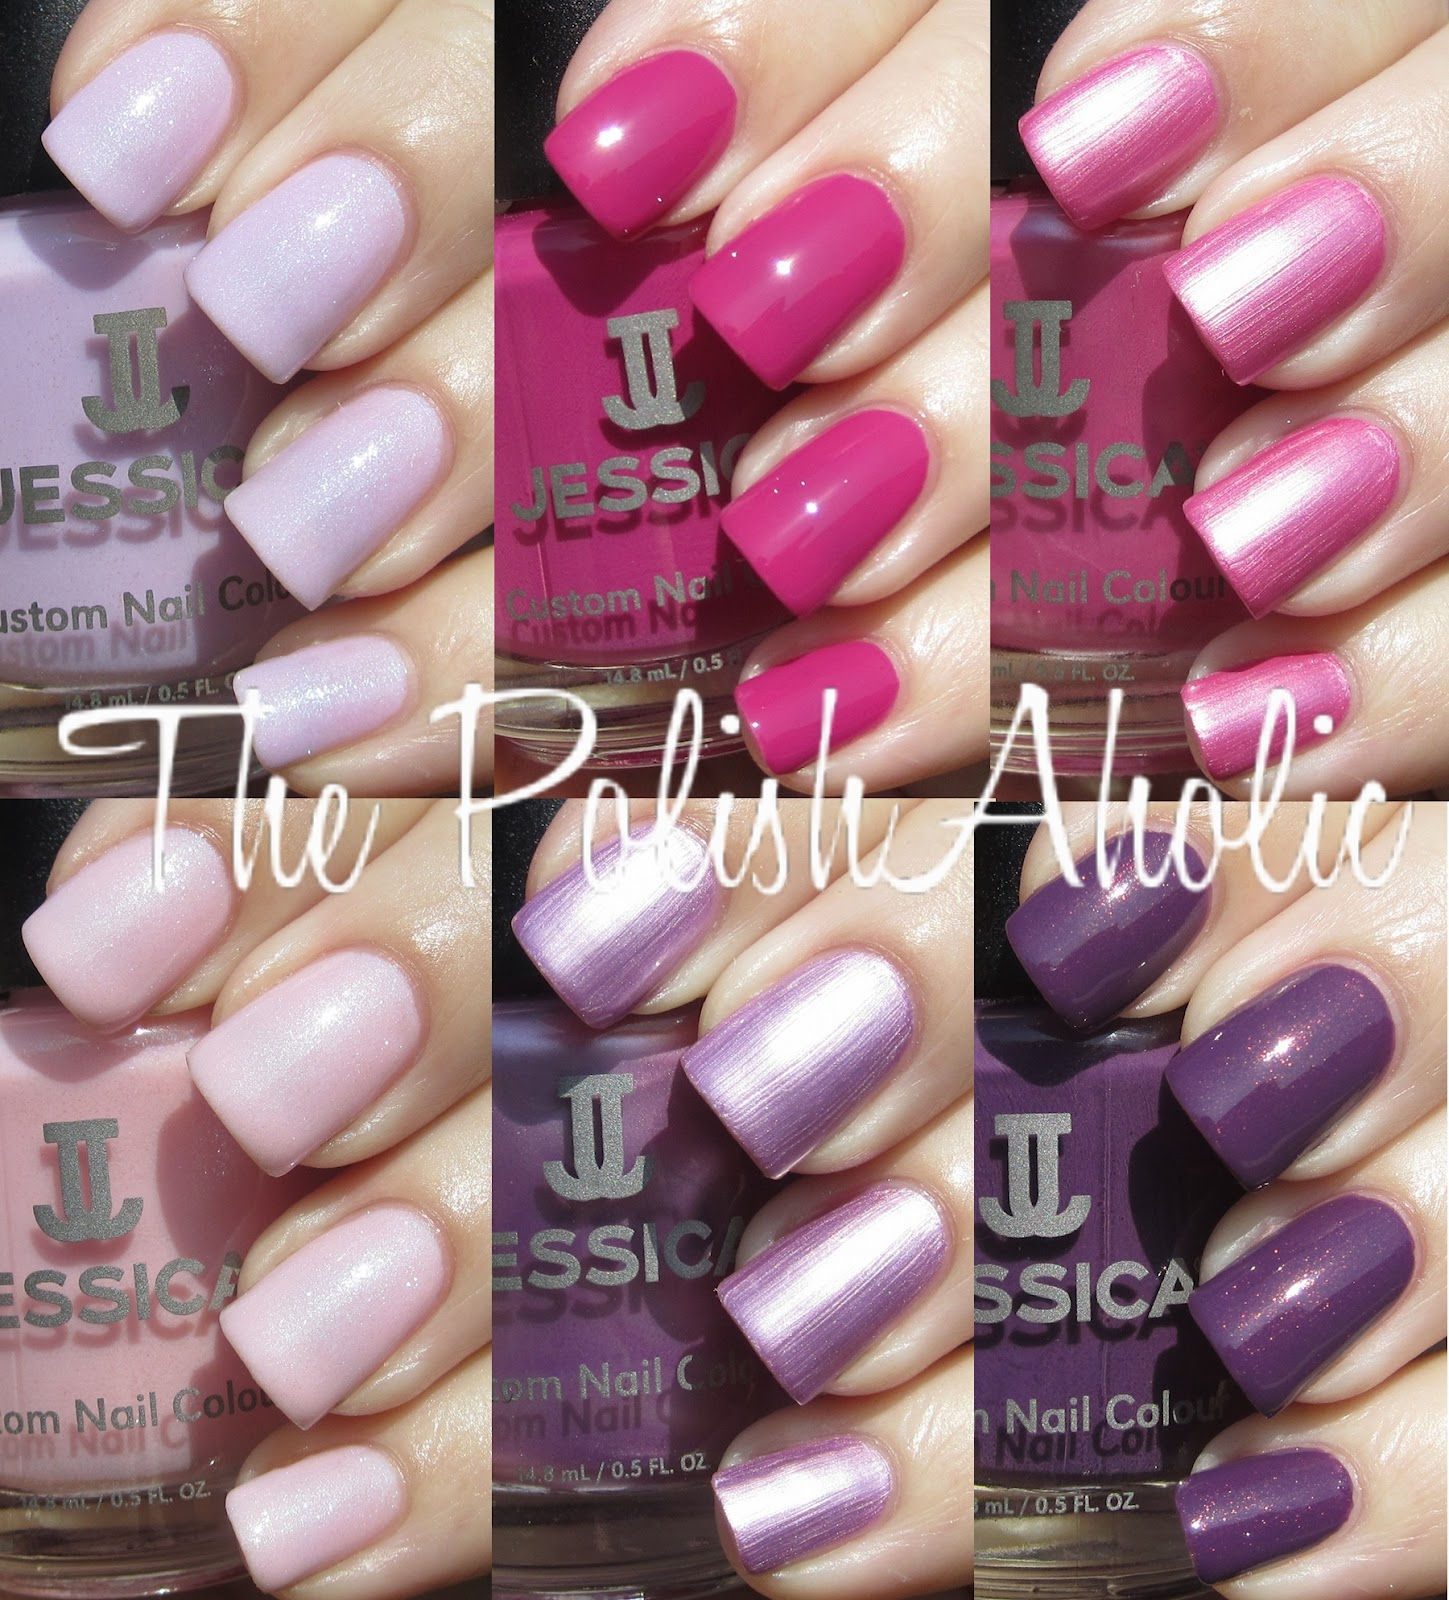 The PolishAholic: Jessica Spring 2012 Heavy Petal Collection Swatches!